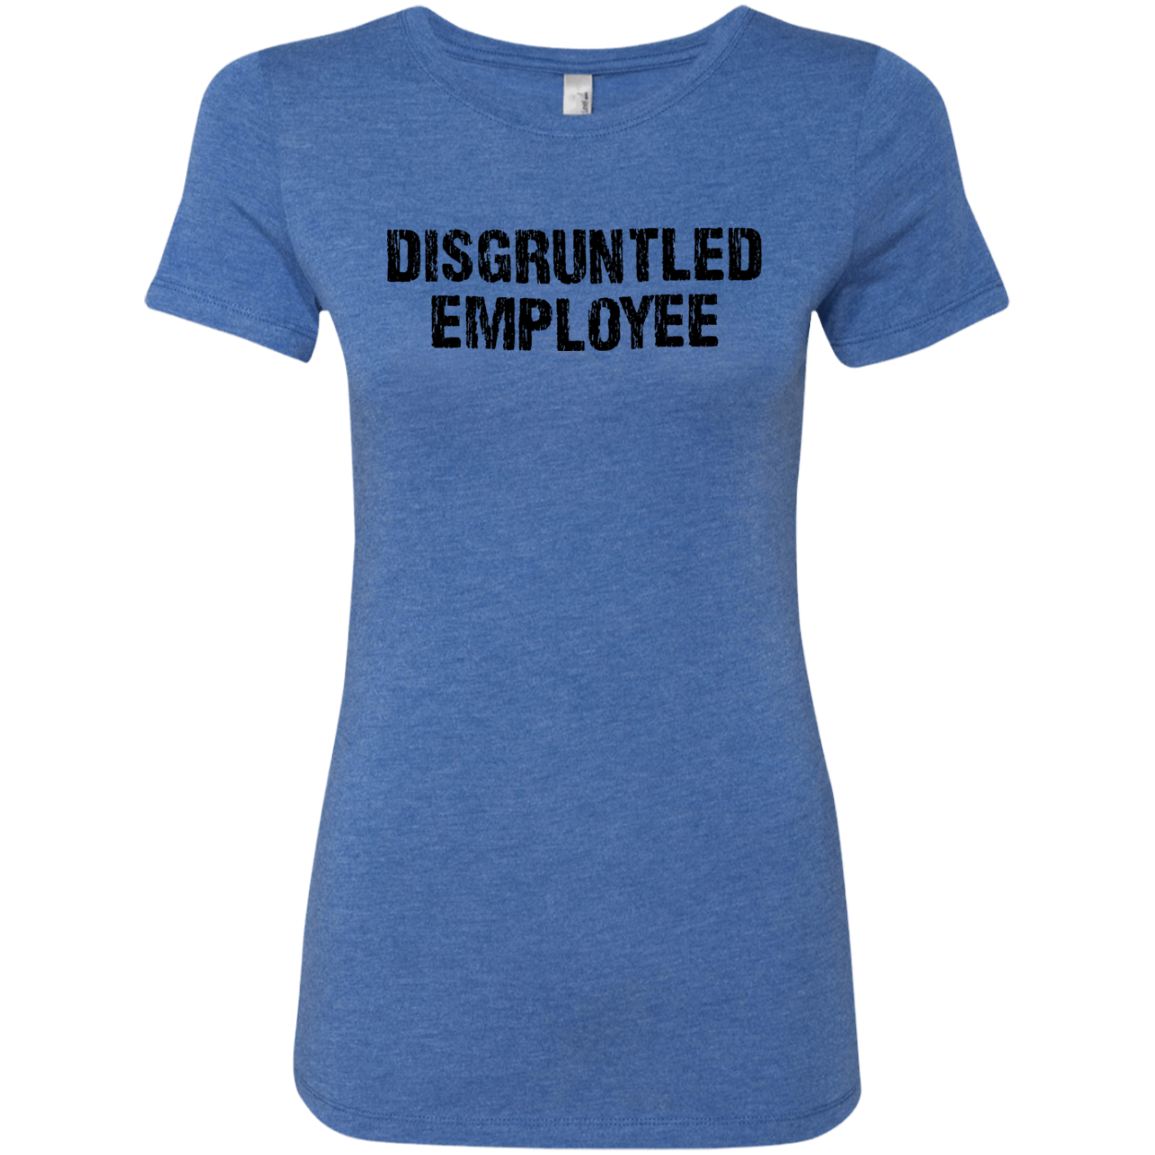 Disgruntled Employee Women's Classic Tee